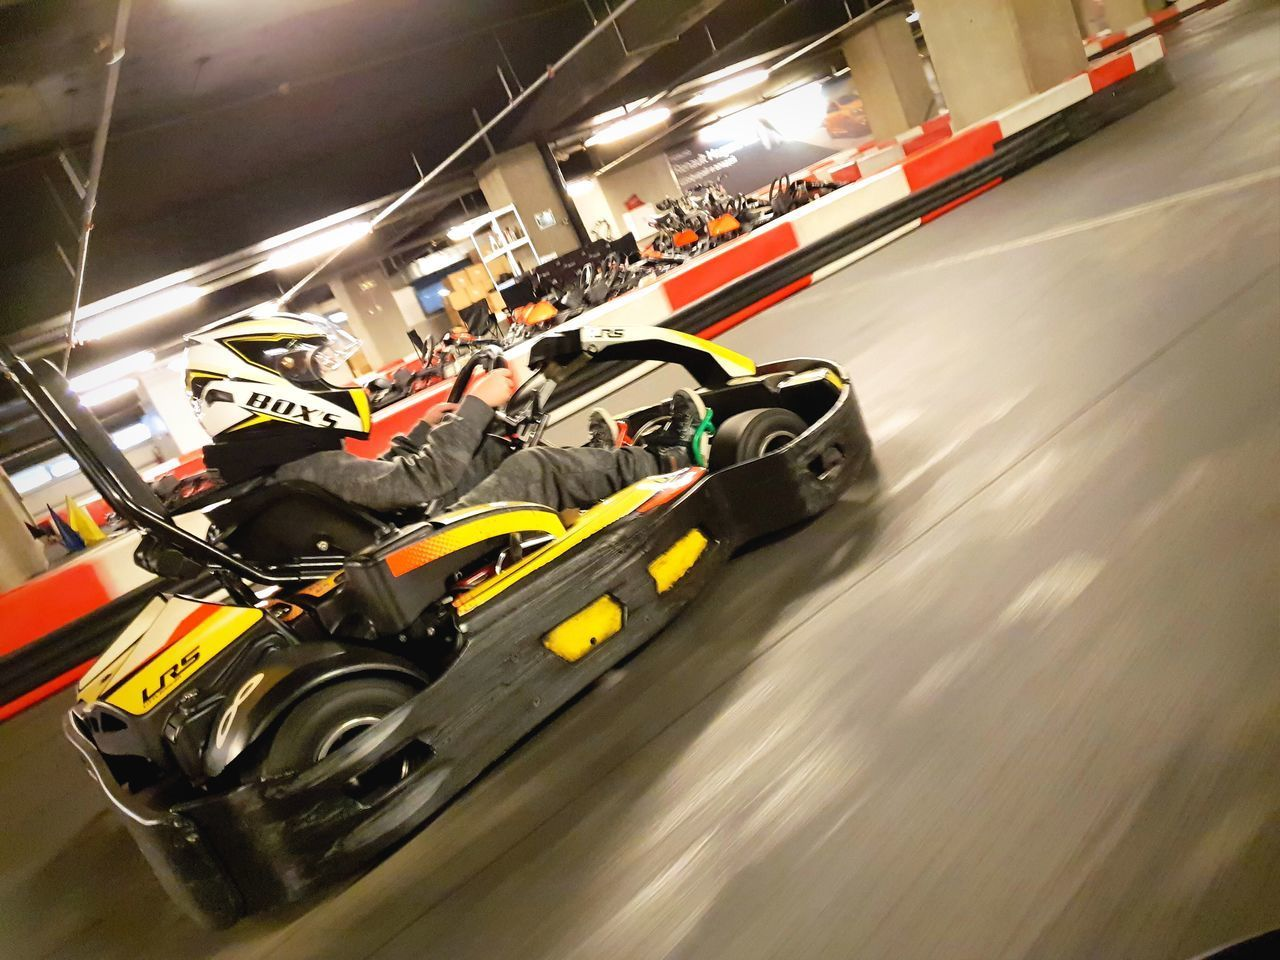 transportation, speed, motion, mode of transportation, sport, blurred motion, sports race, competition, land vehicle, real people, on the move, architecture, motorsport, car, people, racecar, driving, built structure, indoors, competitive sport, motor racing track